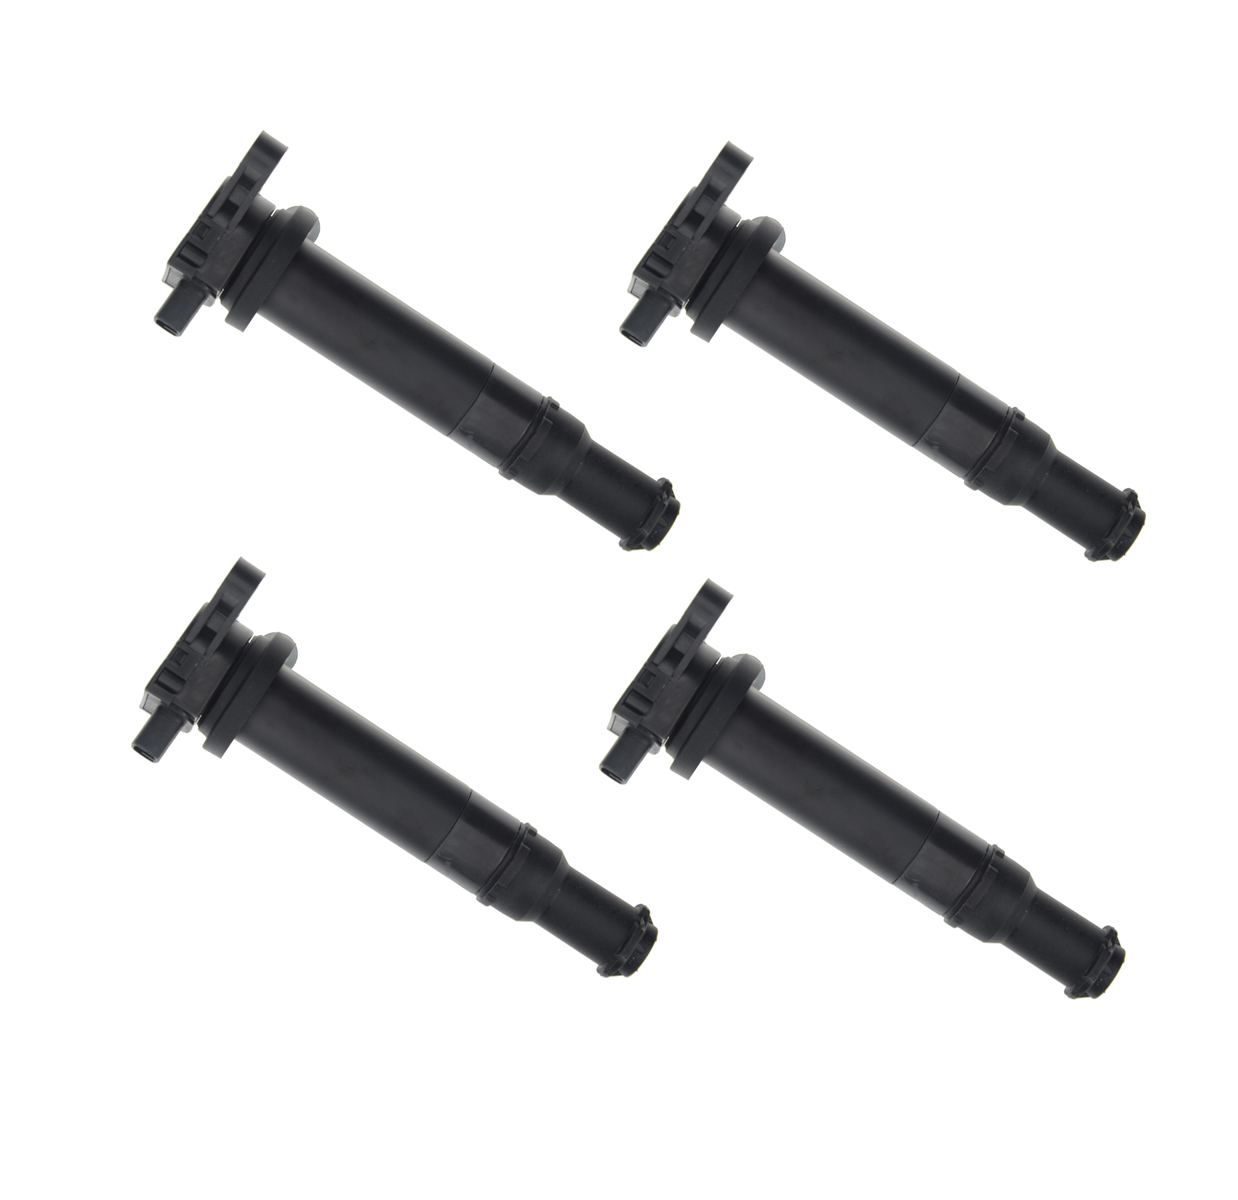 4x ignition coils for hyundai accent kia rio rio5 2006. Black Bedroom Furniture Sets. Home Design Ideas